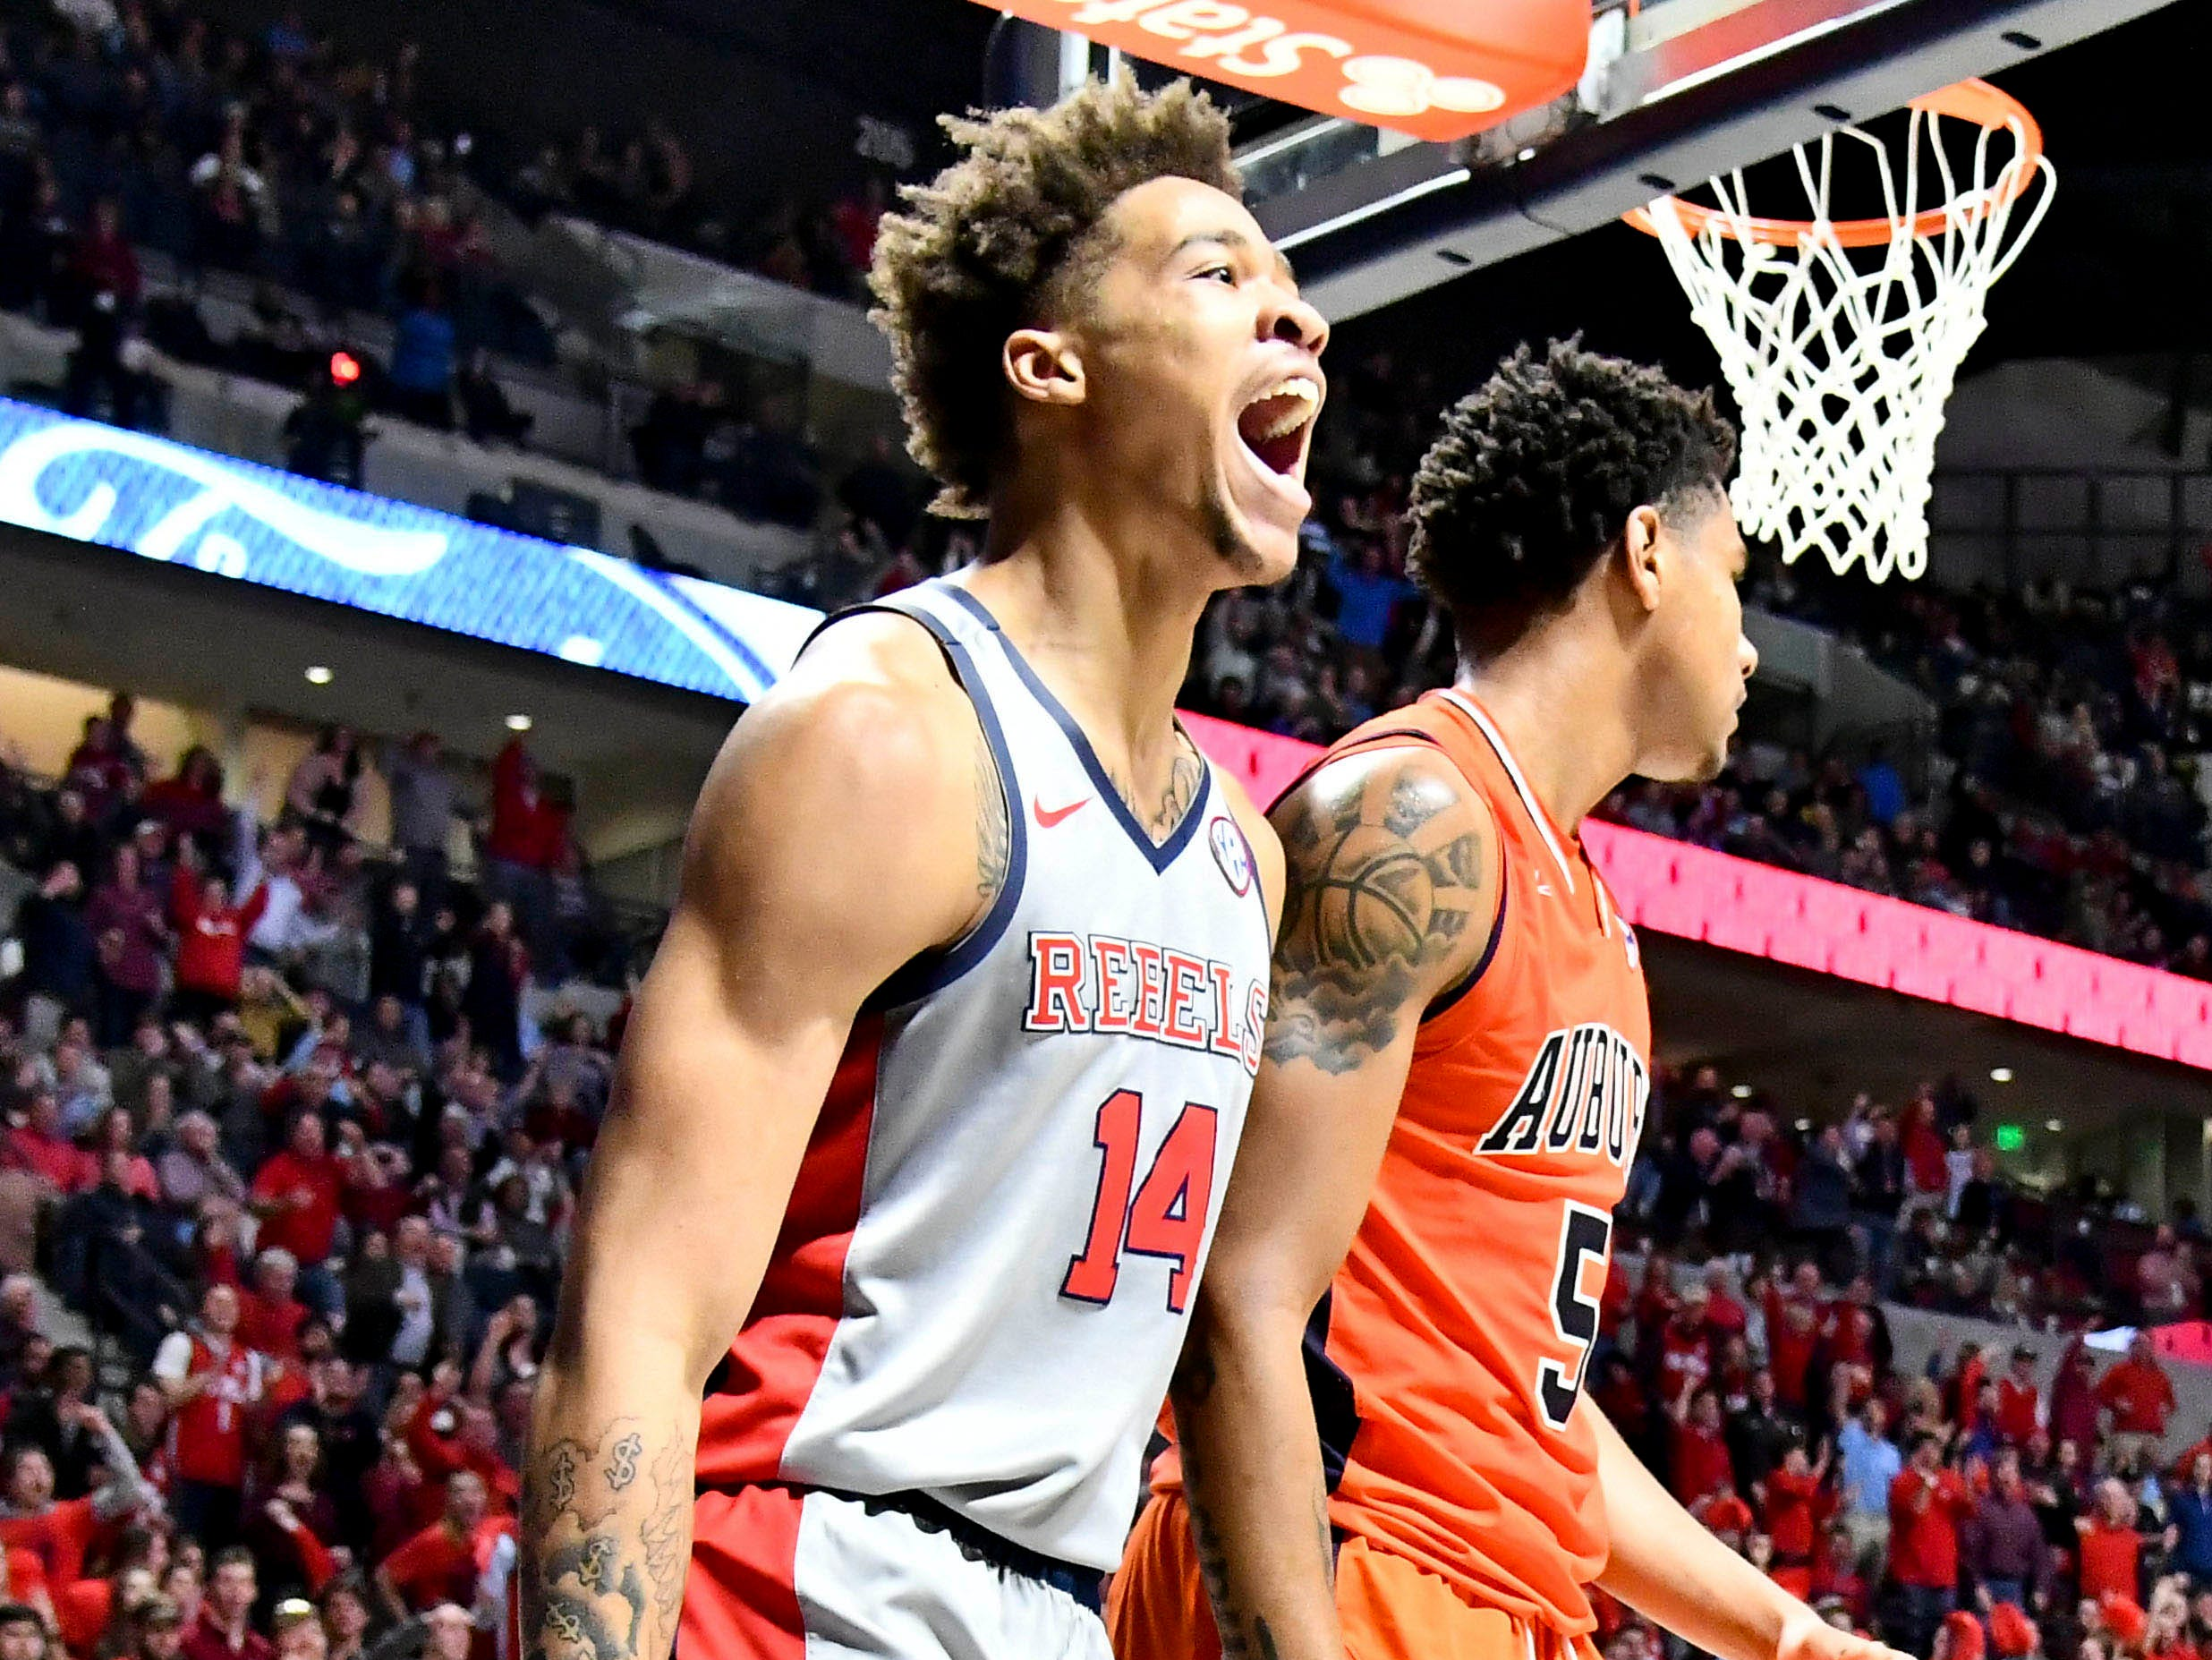 Jan 9, 2019; Oxford, MS, USA; Mississippi Rebels forward KJ Buffen (14) reacts after a play against the Auburn Tigers during the second half at The Pavilion at Ole Miss. Mandatory Credit: Matt Bush-USA TODAY Sports